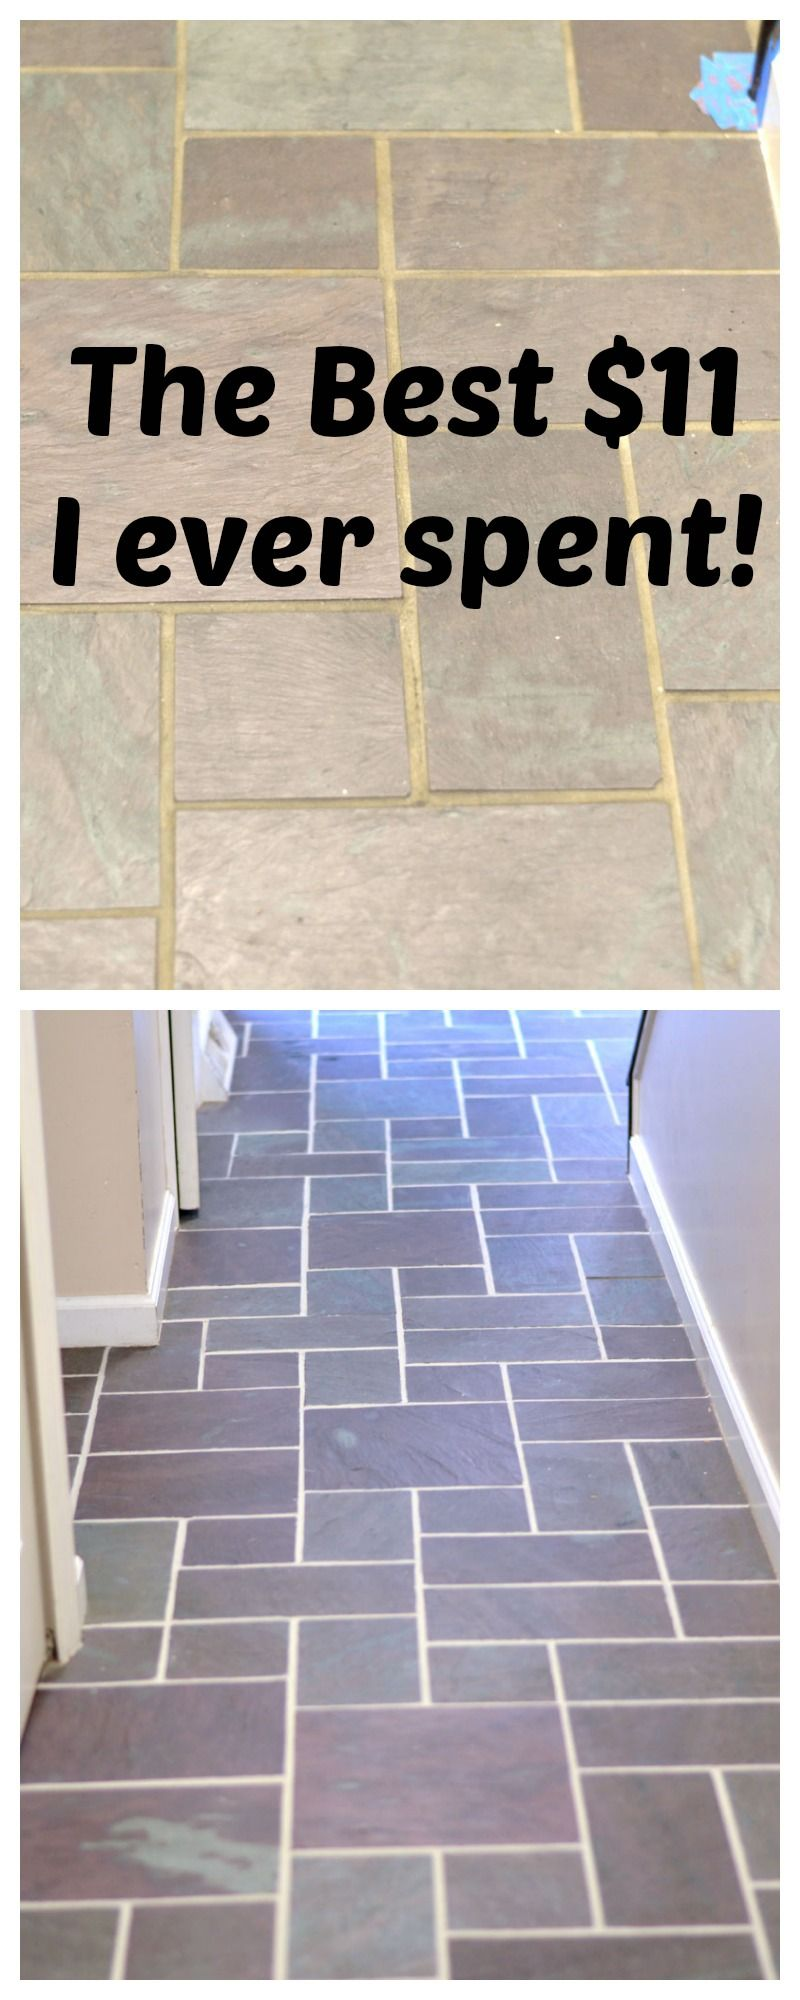 slate floor grout renew food recipes floor grout. Black Bedroom Furniture Sets. Home Design Ideas